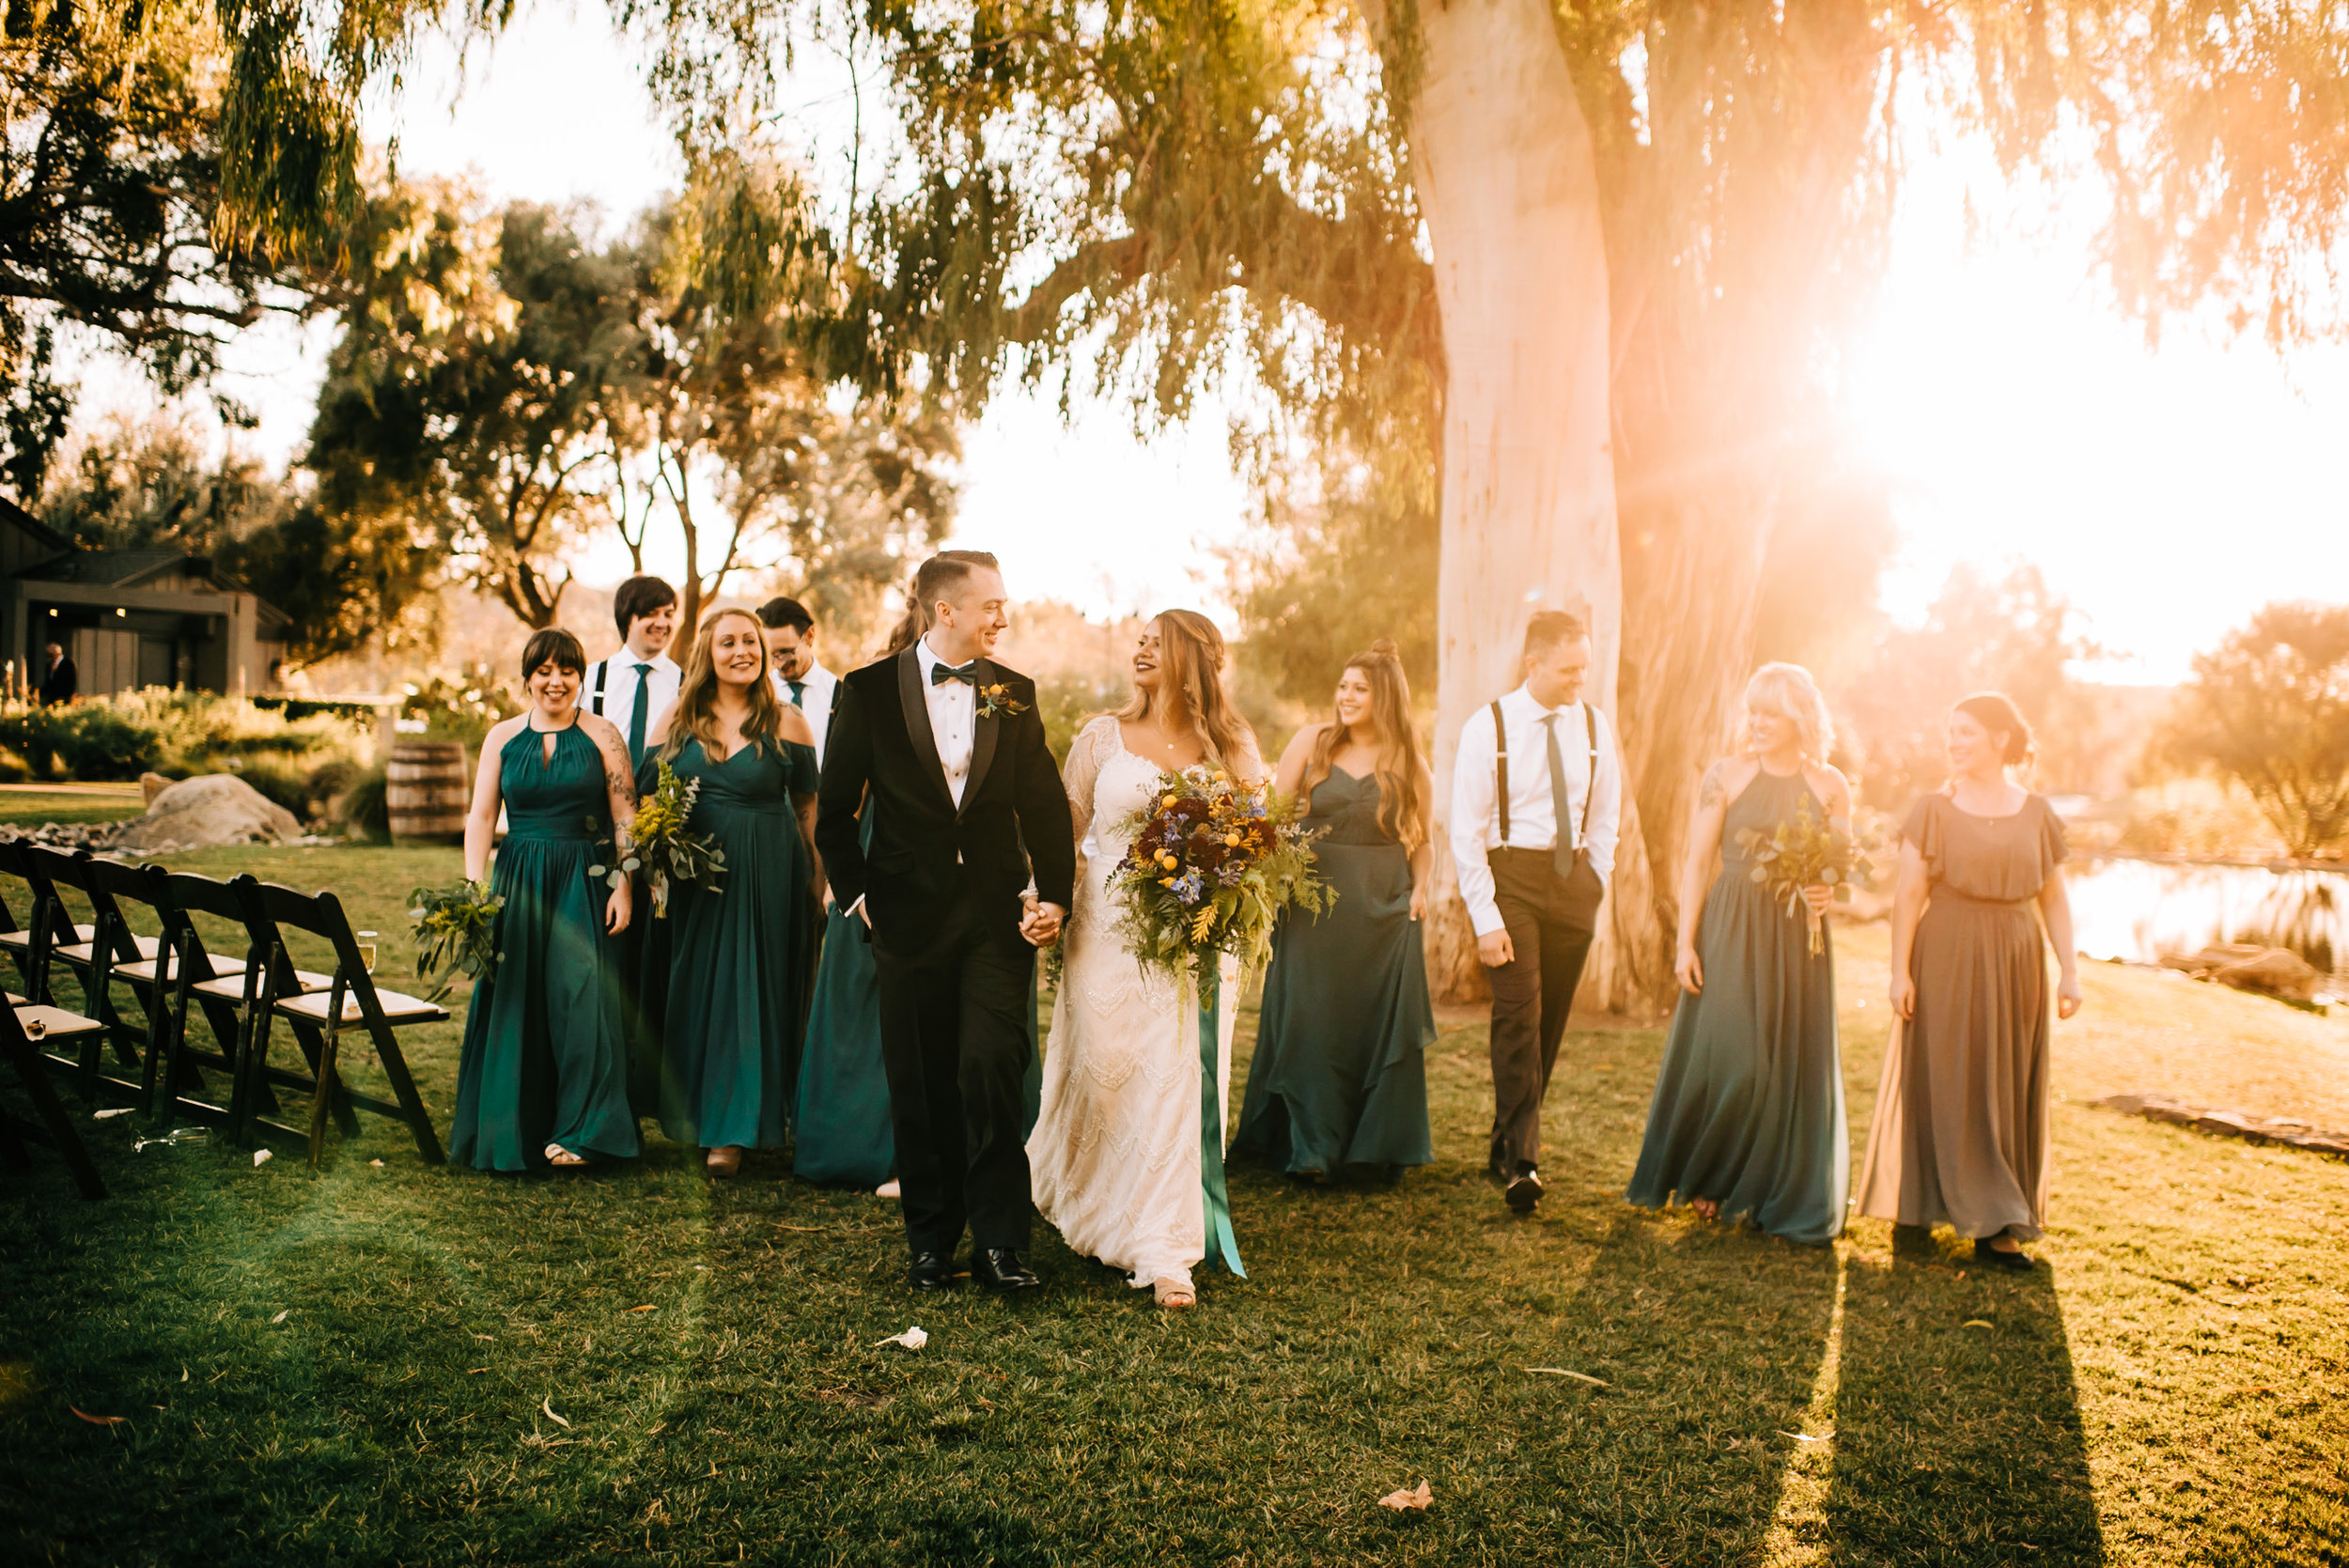 bay area nontraditional wedding photographer southern california boho wedding love light magic san francisco oakland northern california-723.jpg